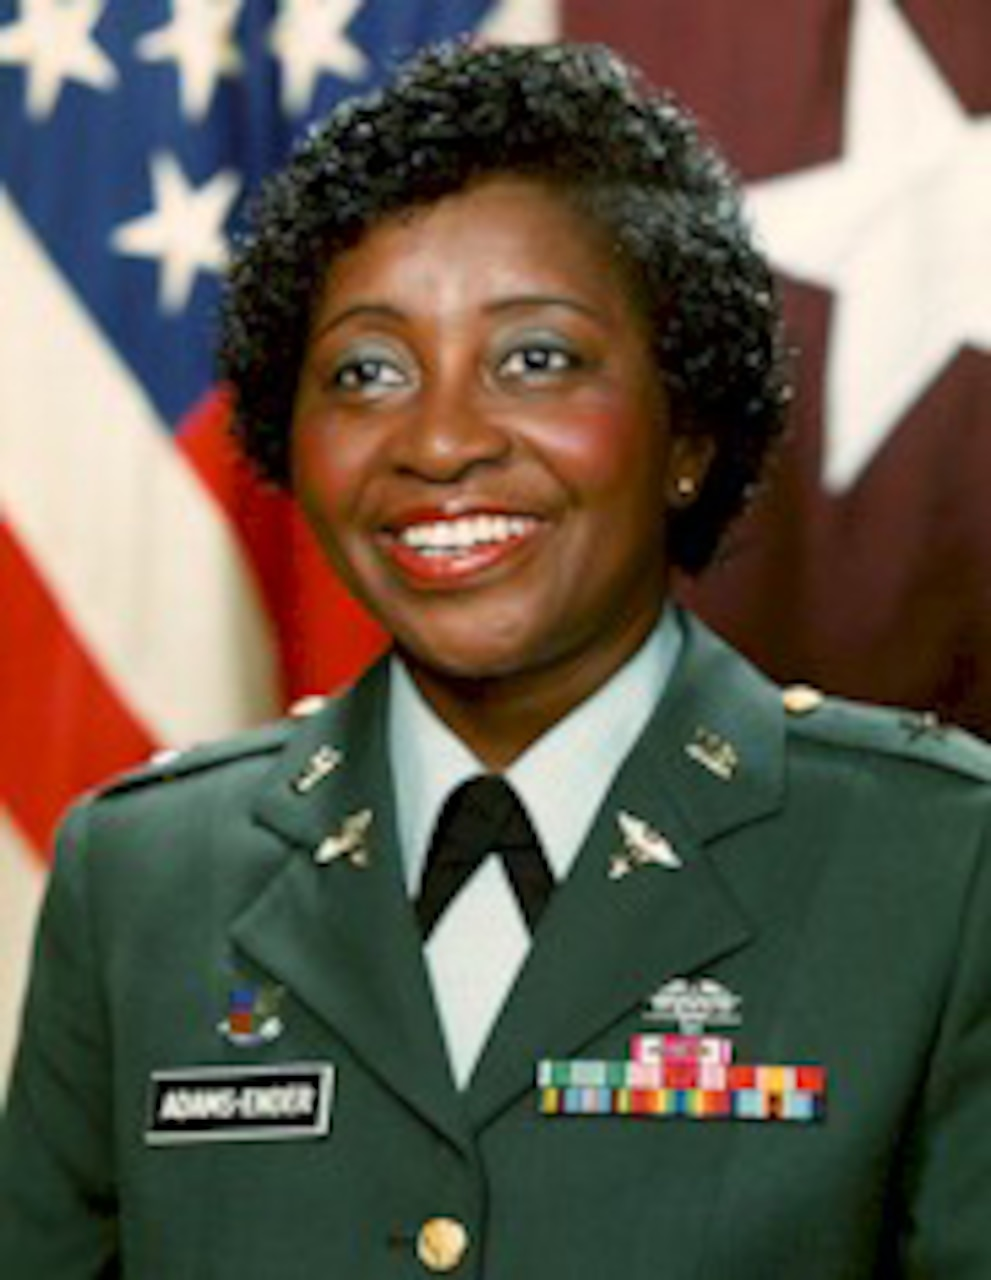 Brig. Gen. Adams-Ender was appointed as chief of the Army Nurse Corps on Sept. 1, 1987. In 1991, she became the first woman to command an Army installation, Fort Belvoir, Va. Courtesy photo